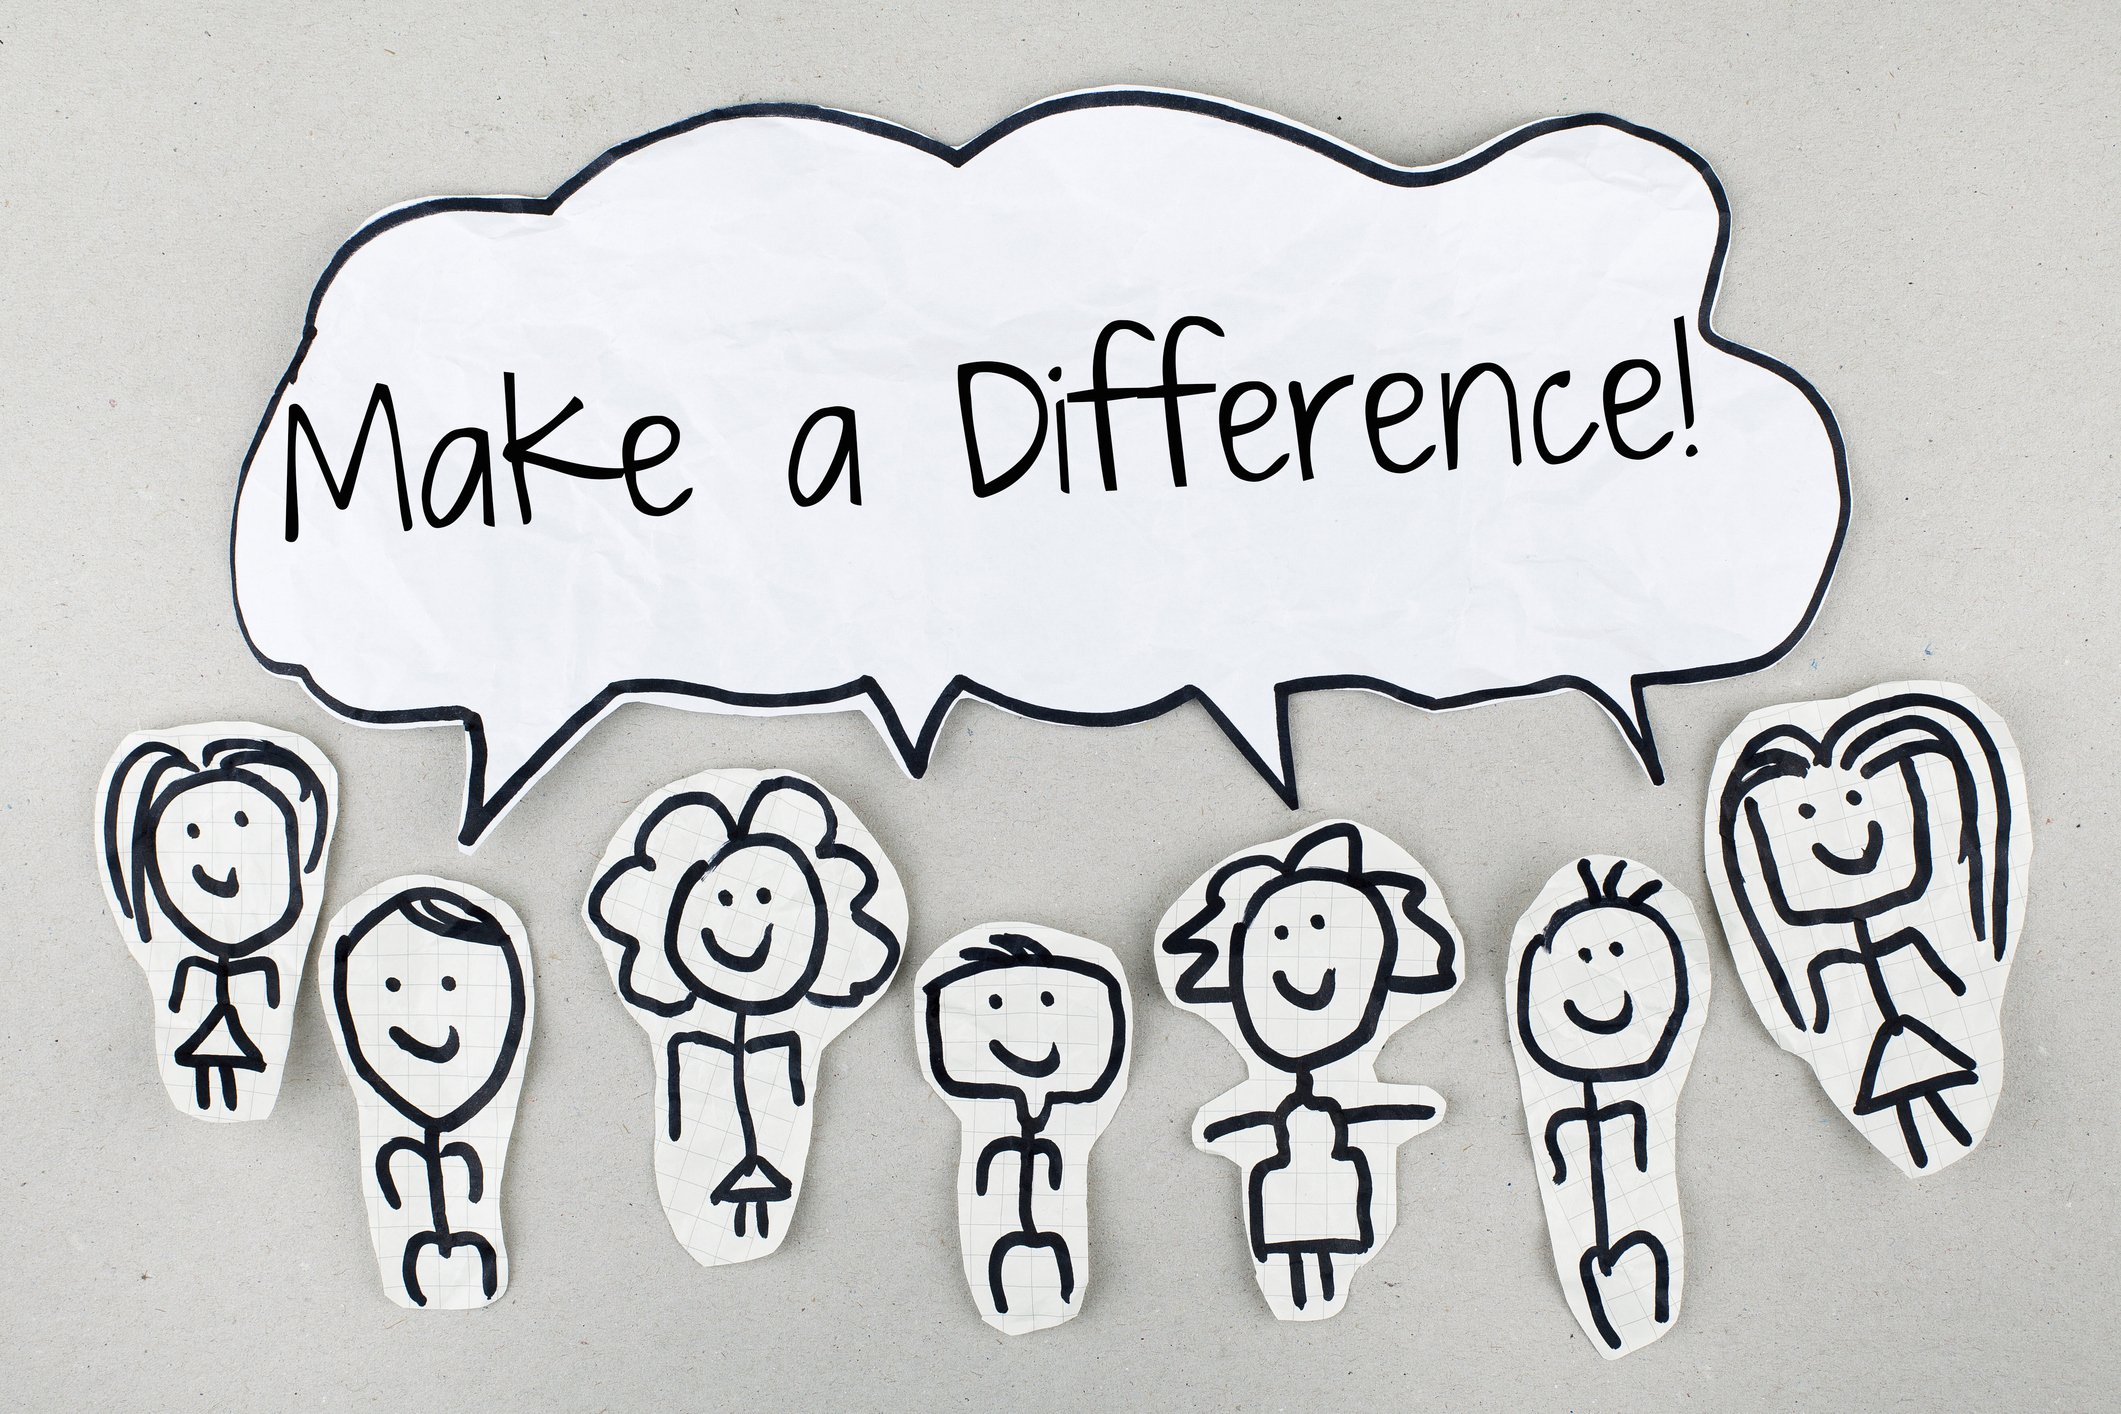 careers that make a difference